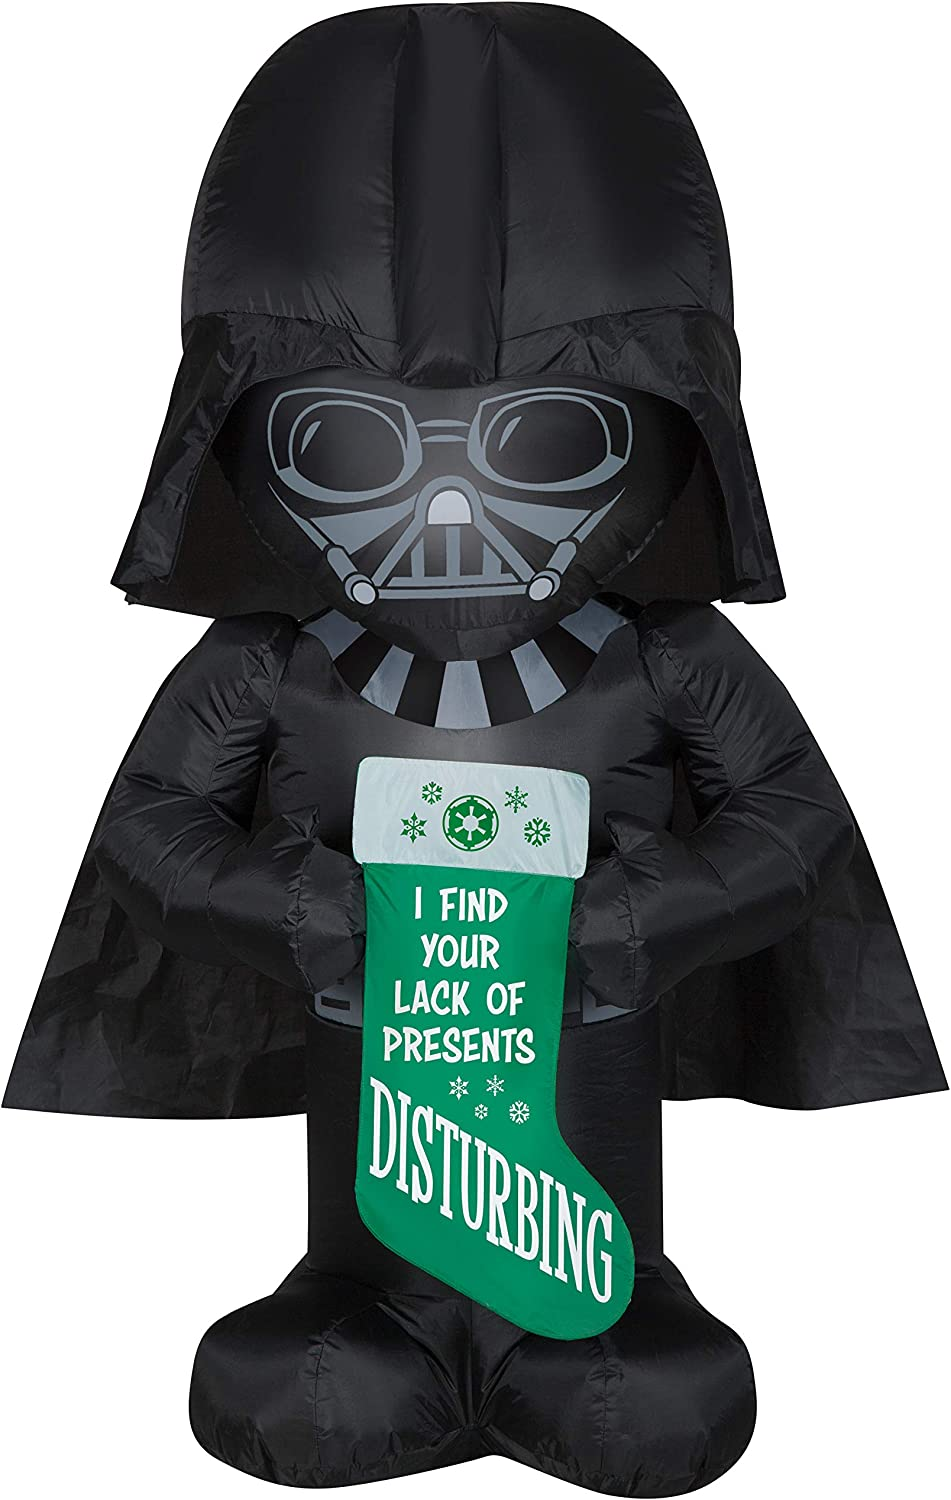 Gemmy 5Ft. Tall Star Wars Darth Vader Holding Stocking Christmas Airblown Inflatable Indoor/Outdoor Decoration